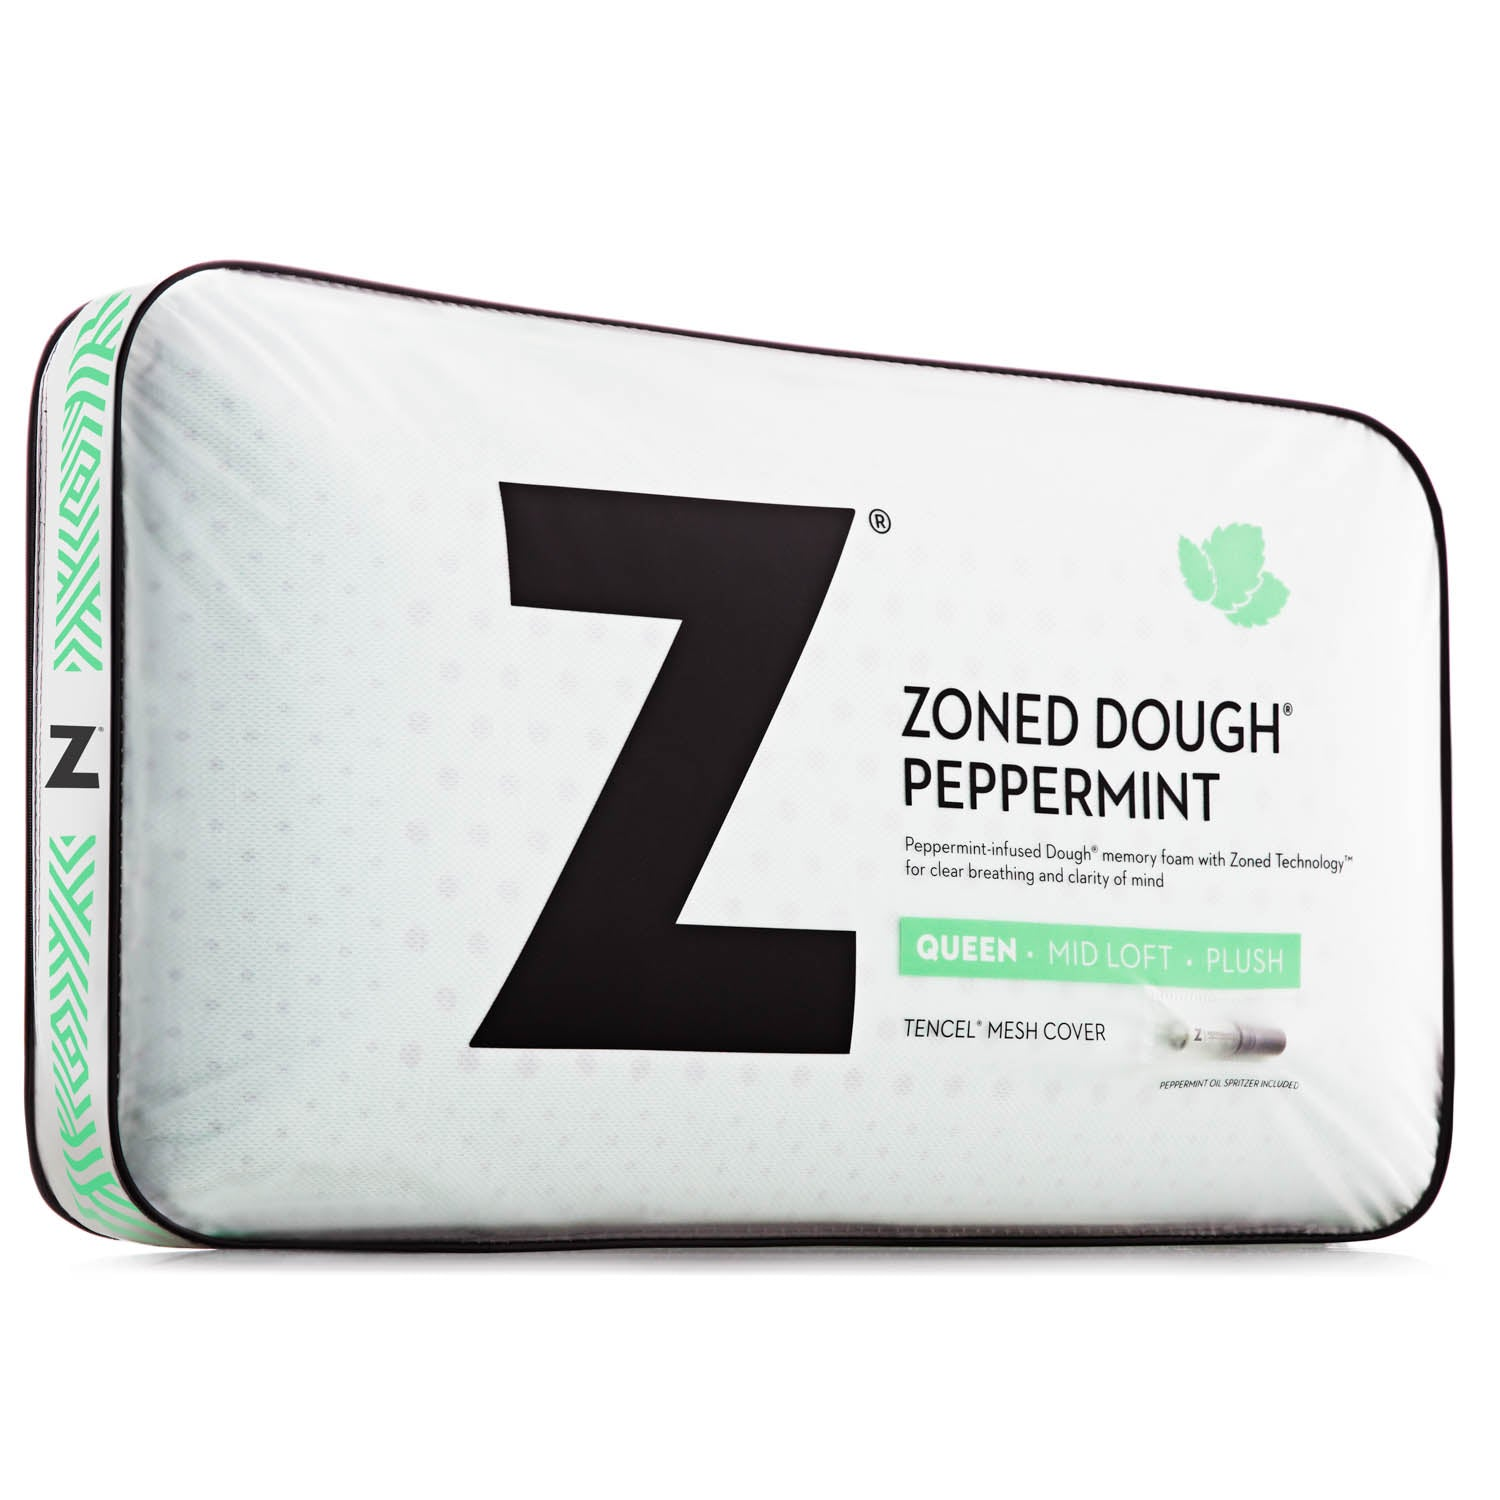 Zoned Dough® Peppermint